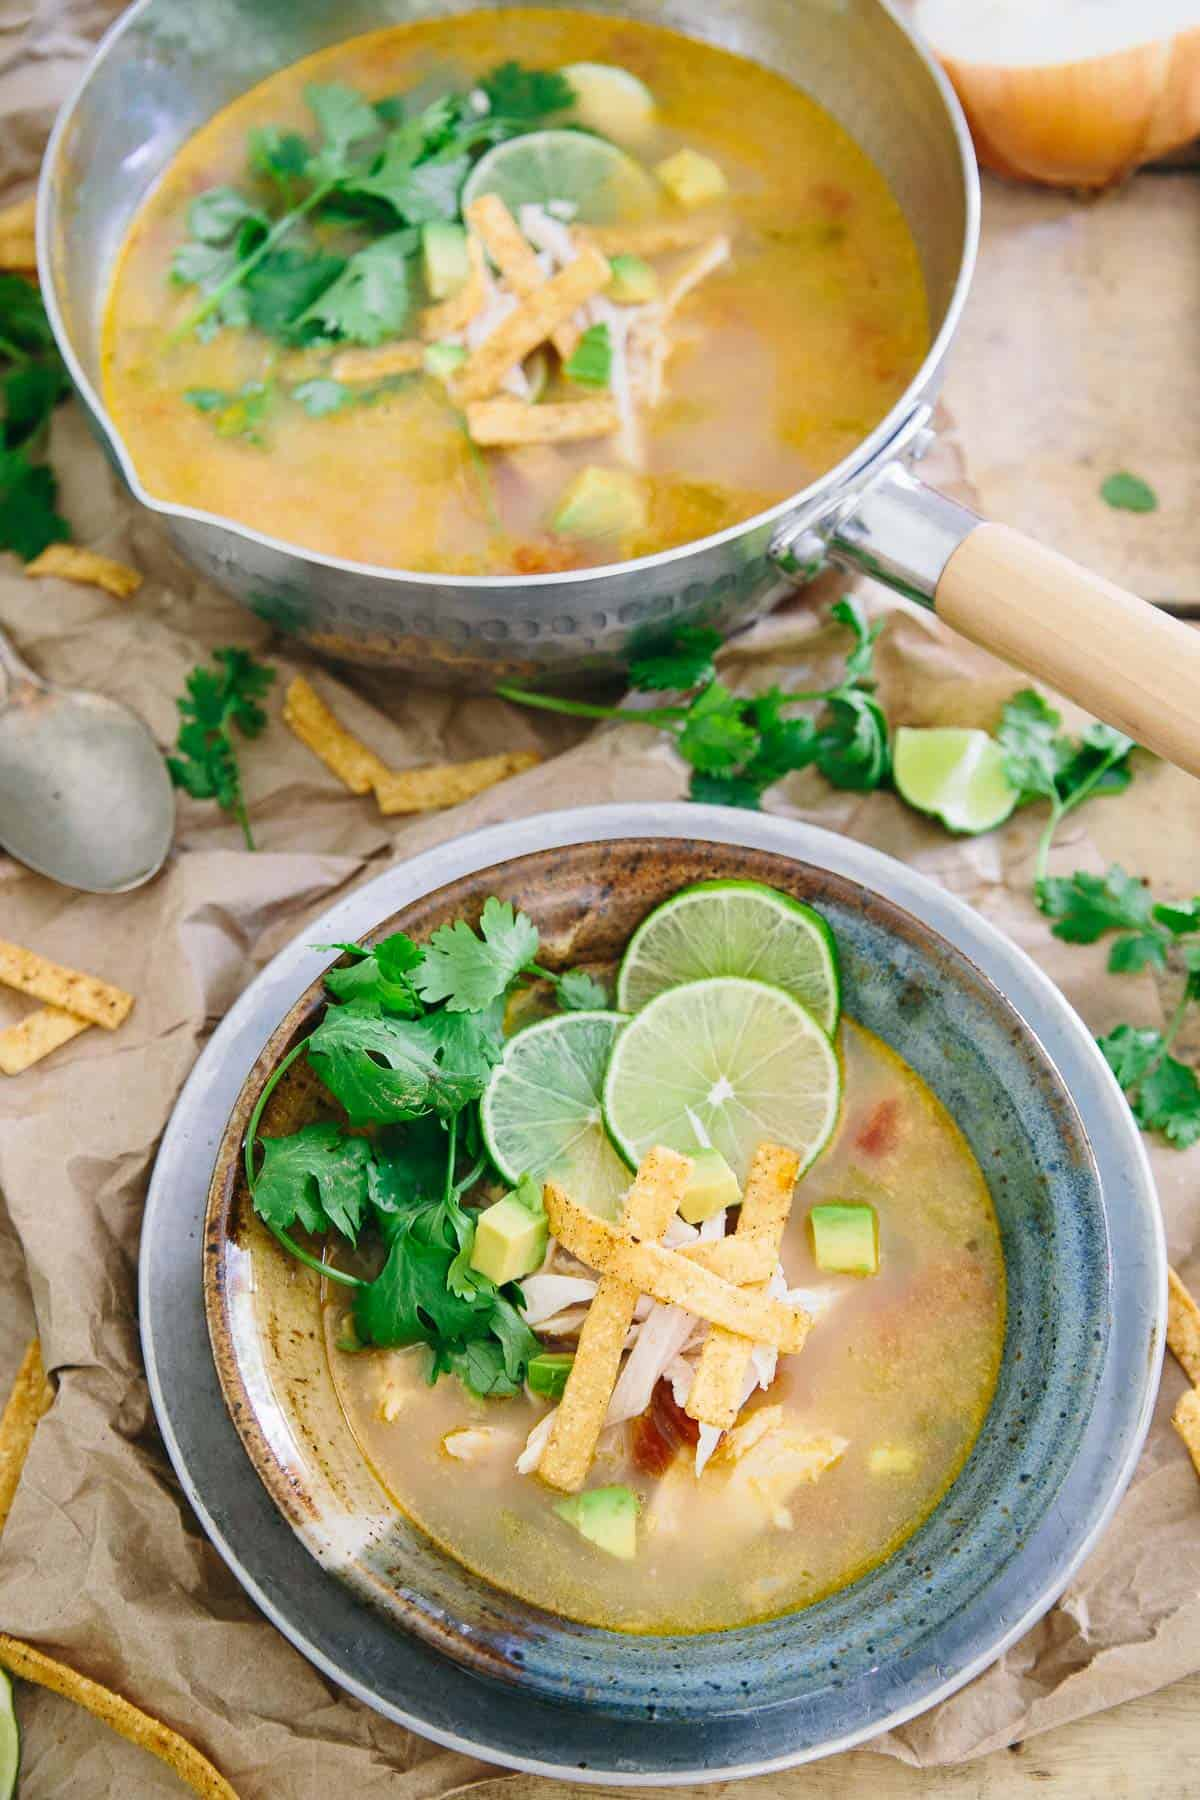 Sopa de Lima is a classic Mexican recipe full of simple yet bold flavors.